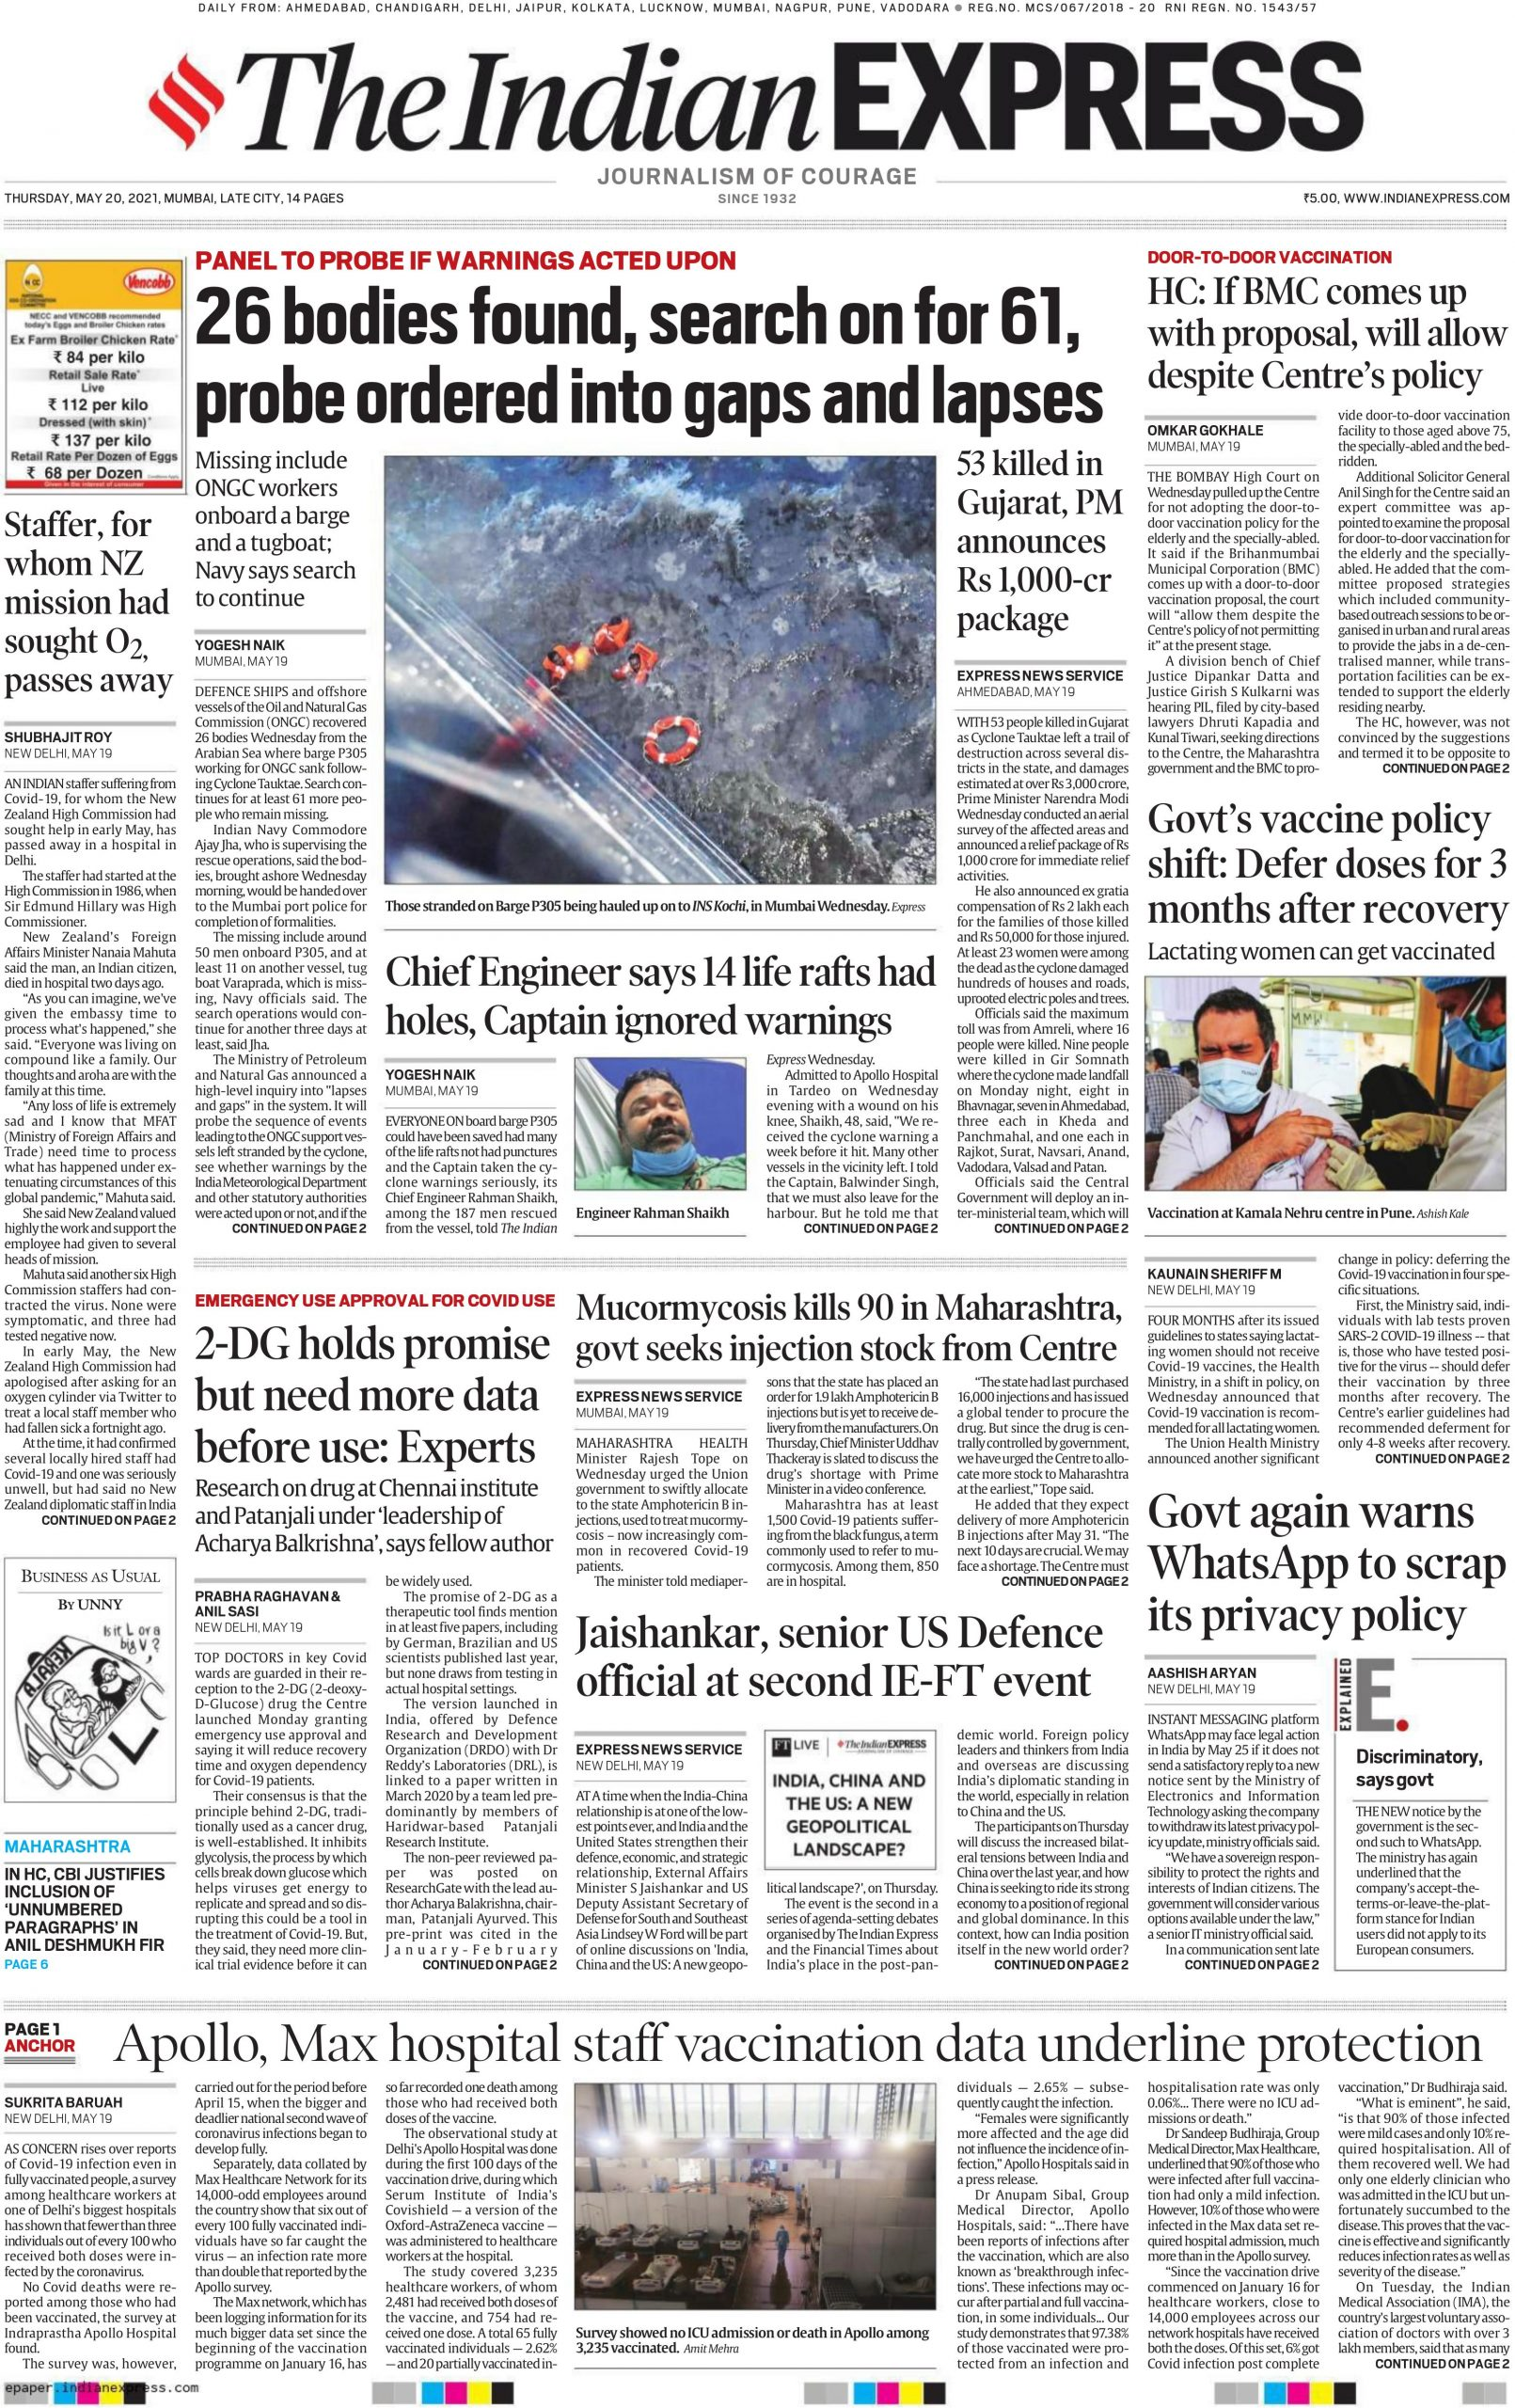 The Indian Express 20th May 2021